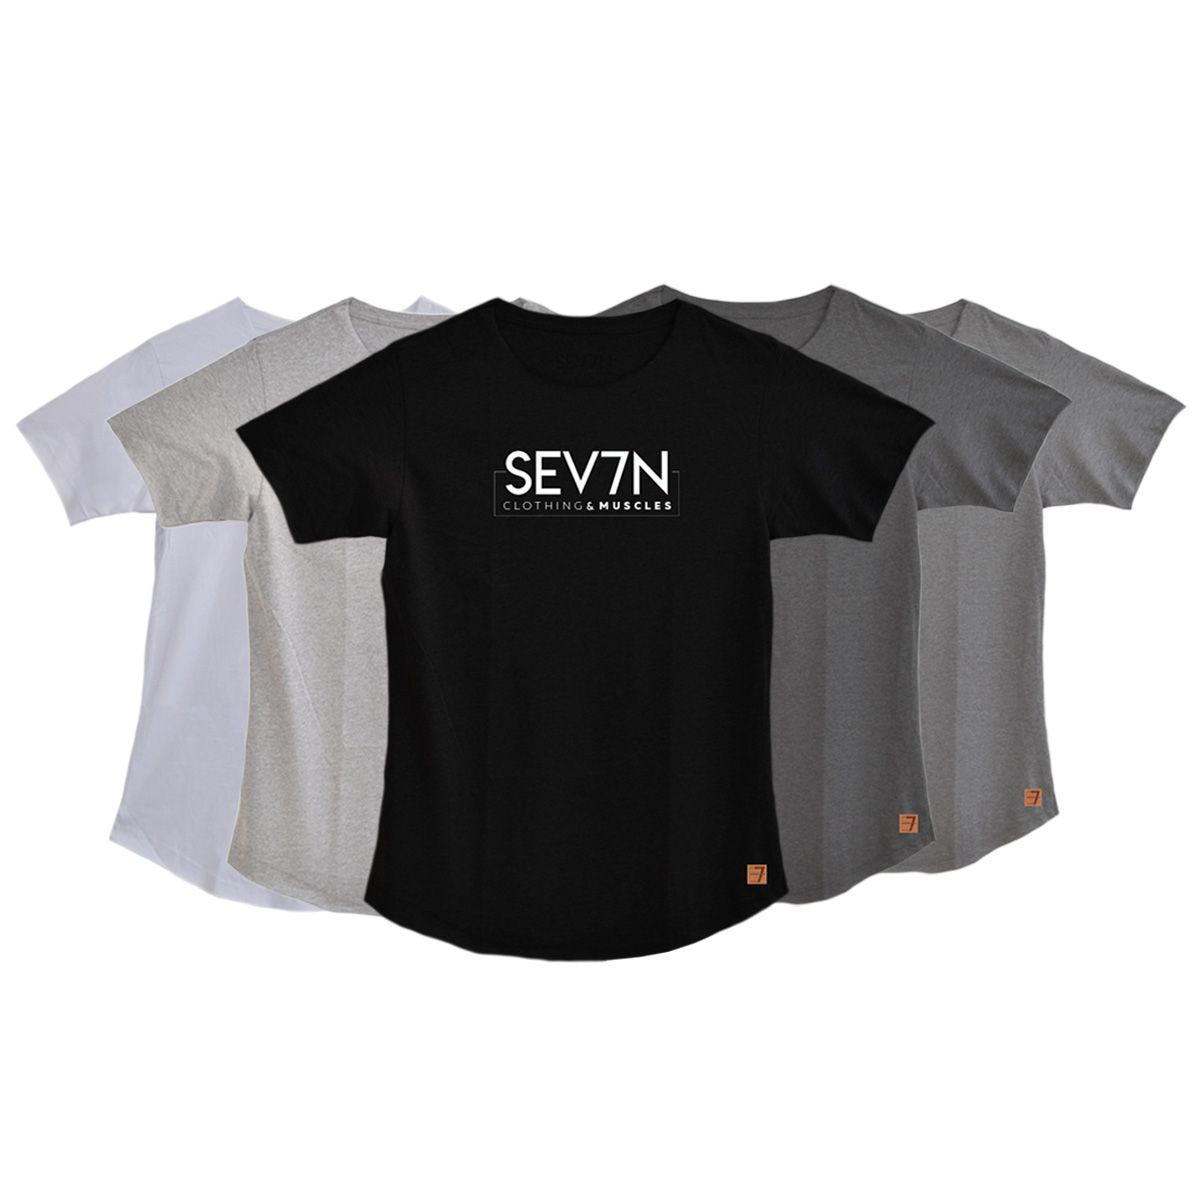 Camiseta Fit Workout - SEV7N Clothing Muscles